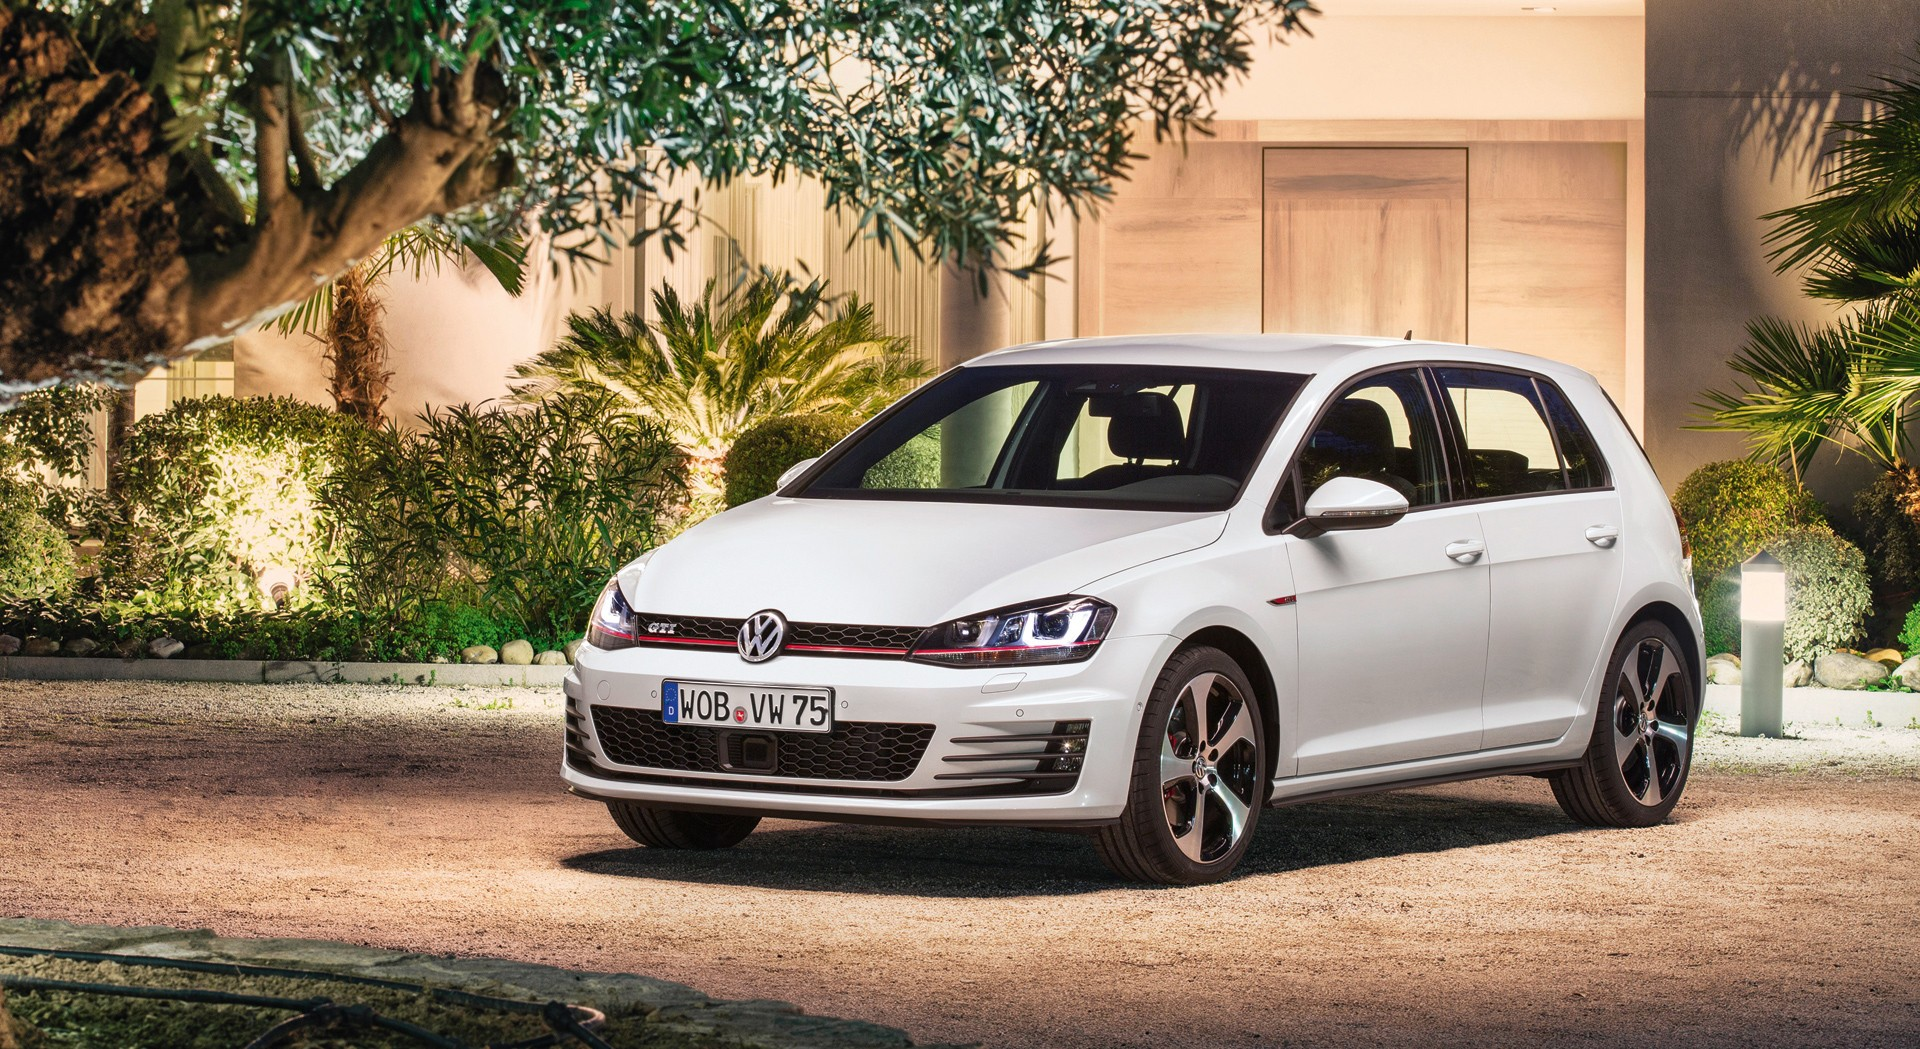 Volkswagen Golf Gti White Hd Hd Desktop Wallpapers 4k Hd